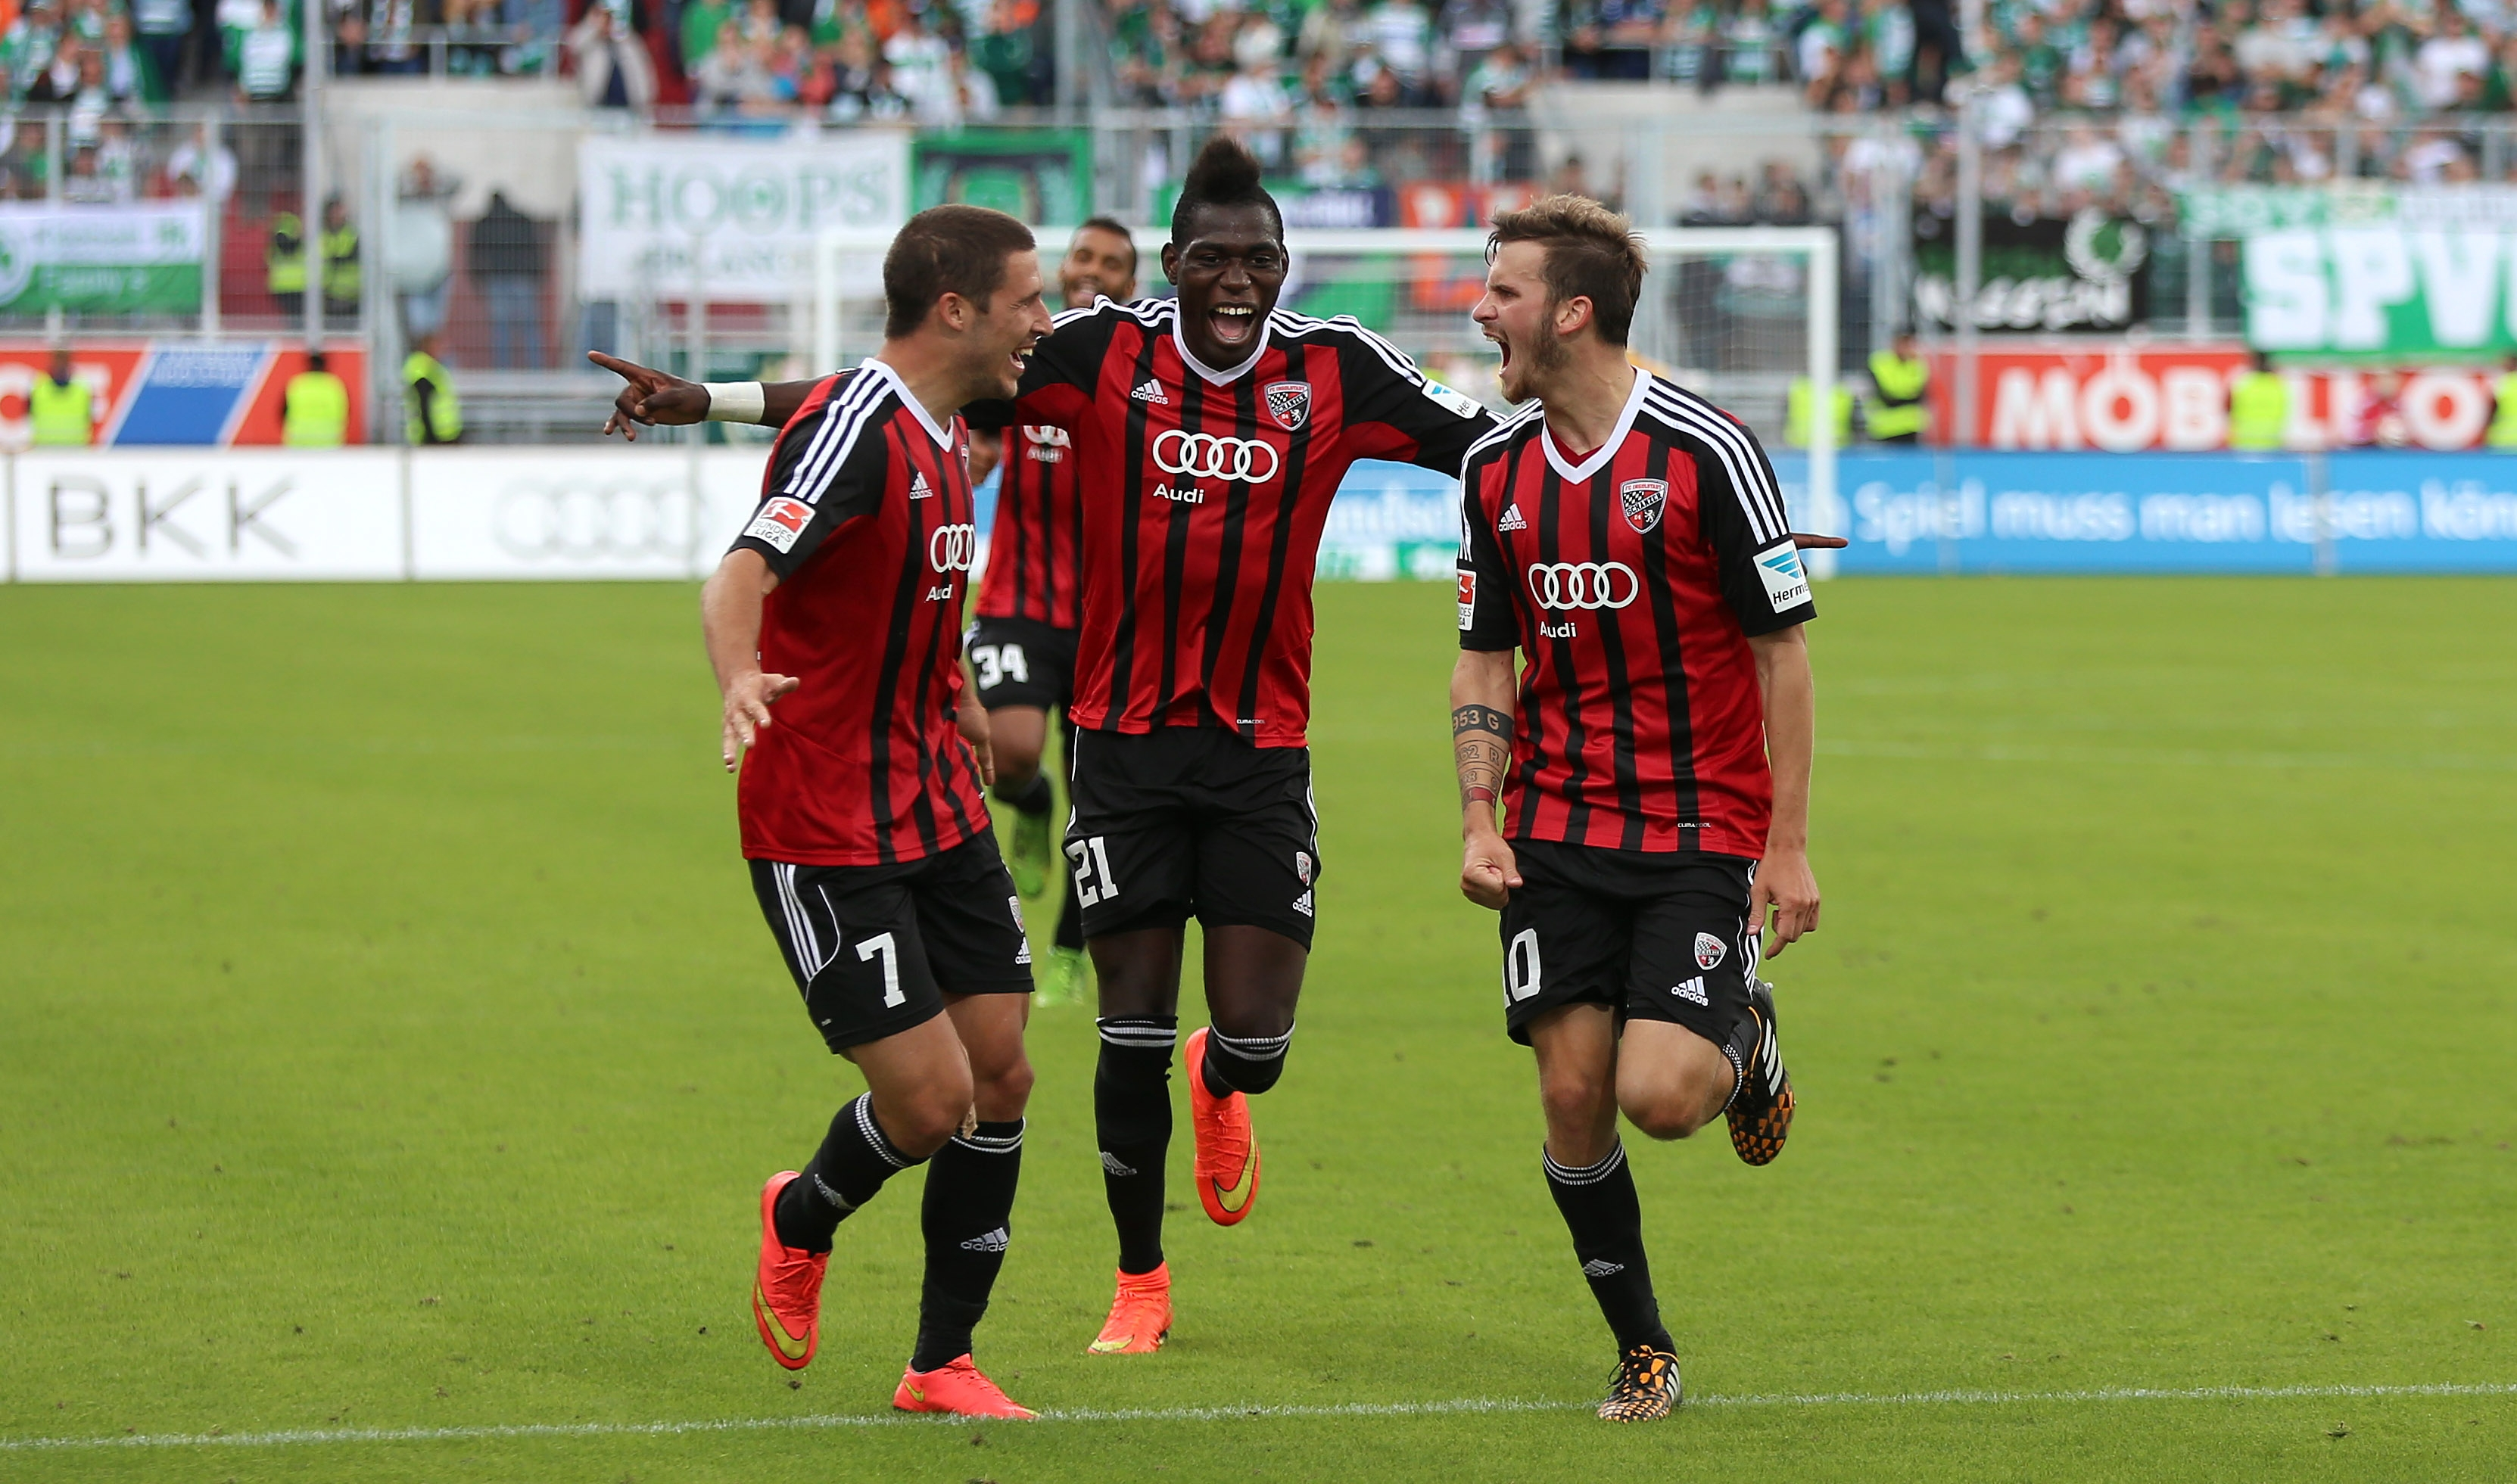 A team effort: Groß celebrates with Danny da Costa and Mathew Leckie. (Credit: FC Ingolstadt)